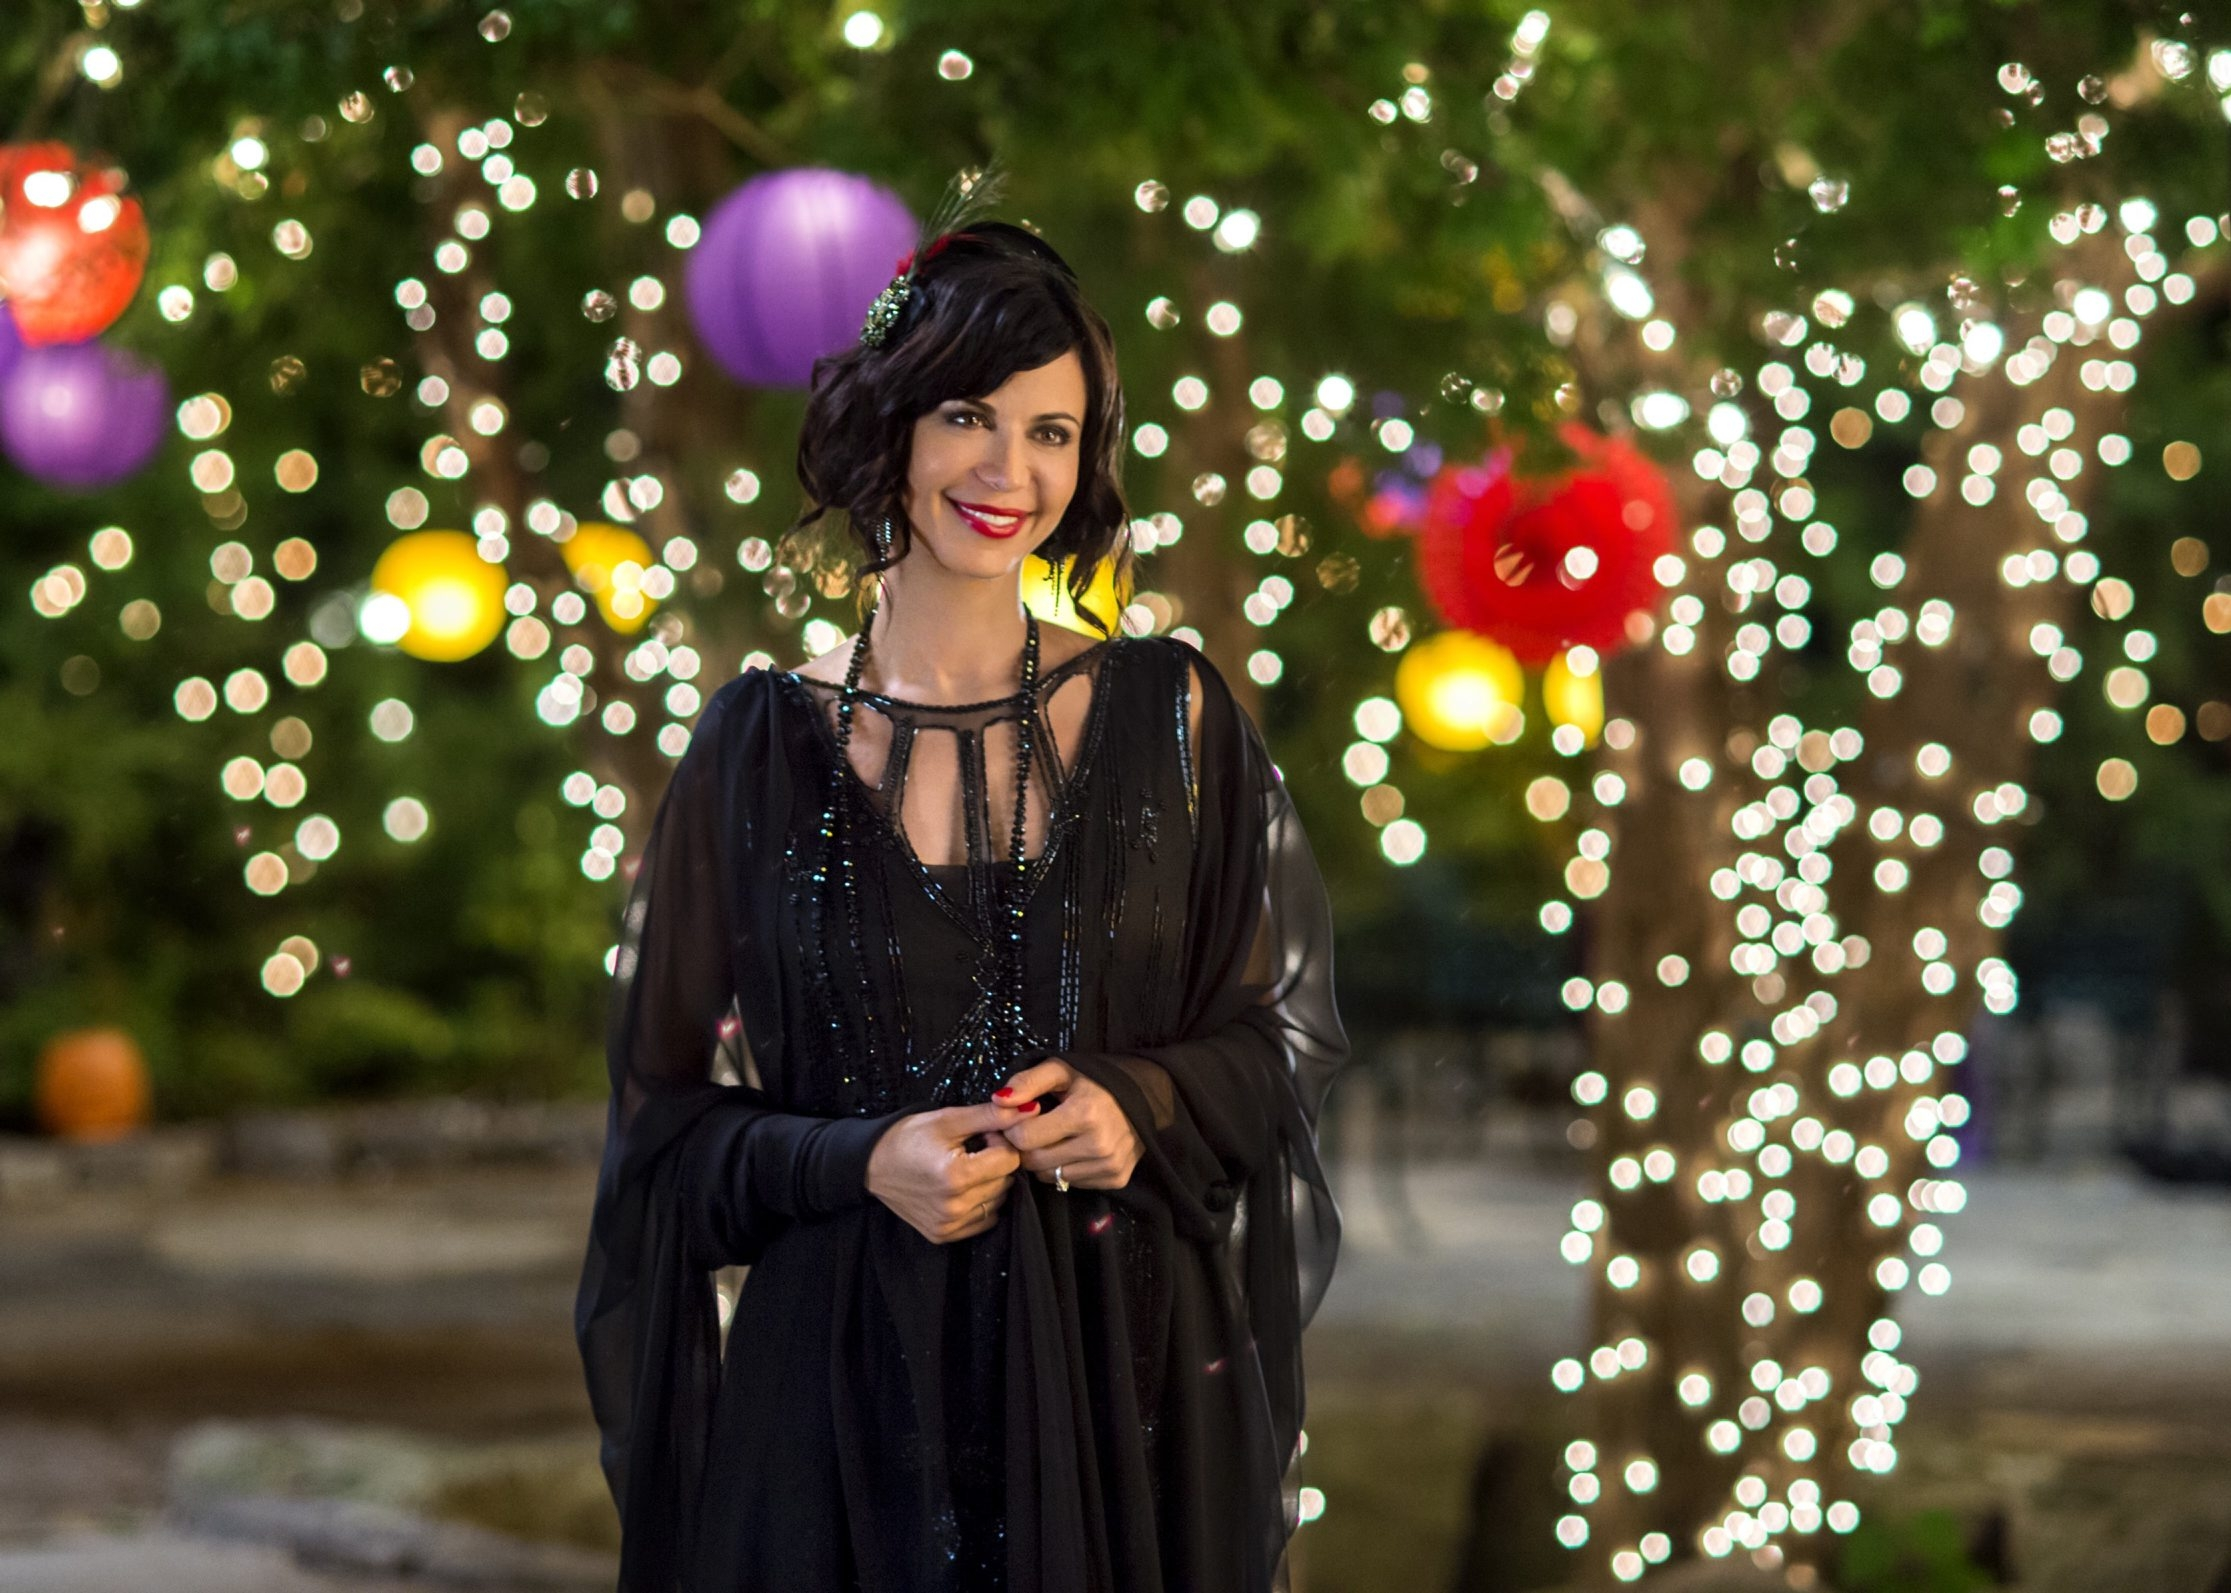 """Catherine Bell returns as Cassie Nightengale in """"The Good Witch's Destiny."""" The sixth installment in the Hallmark Channel's original movie series premieres Saturday night."""